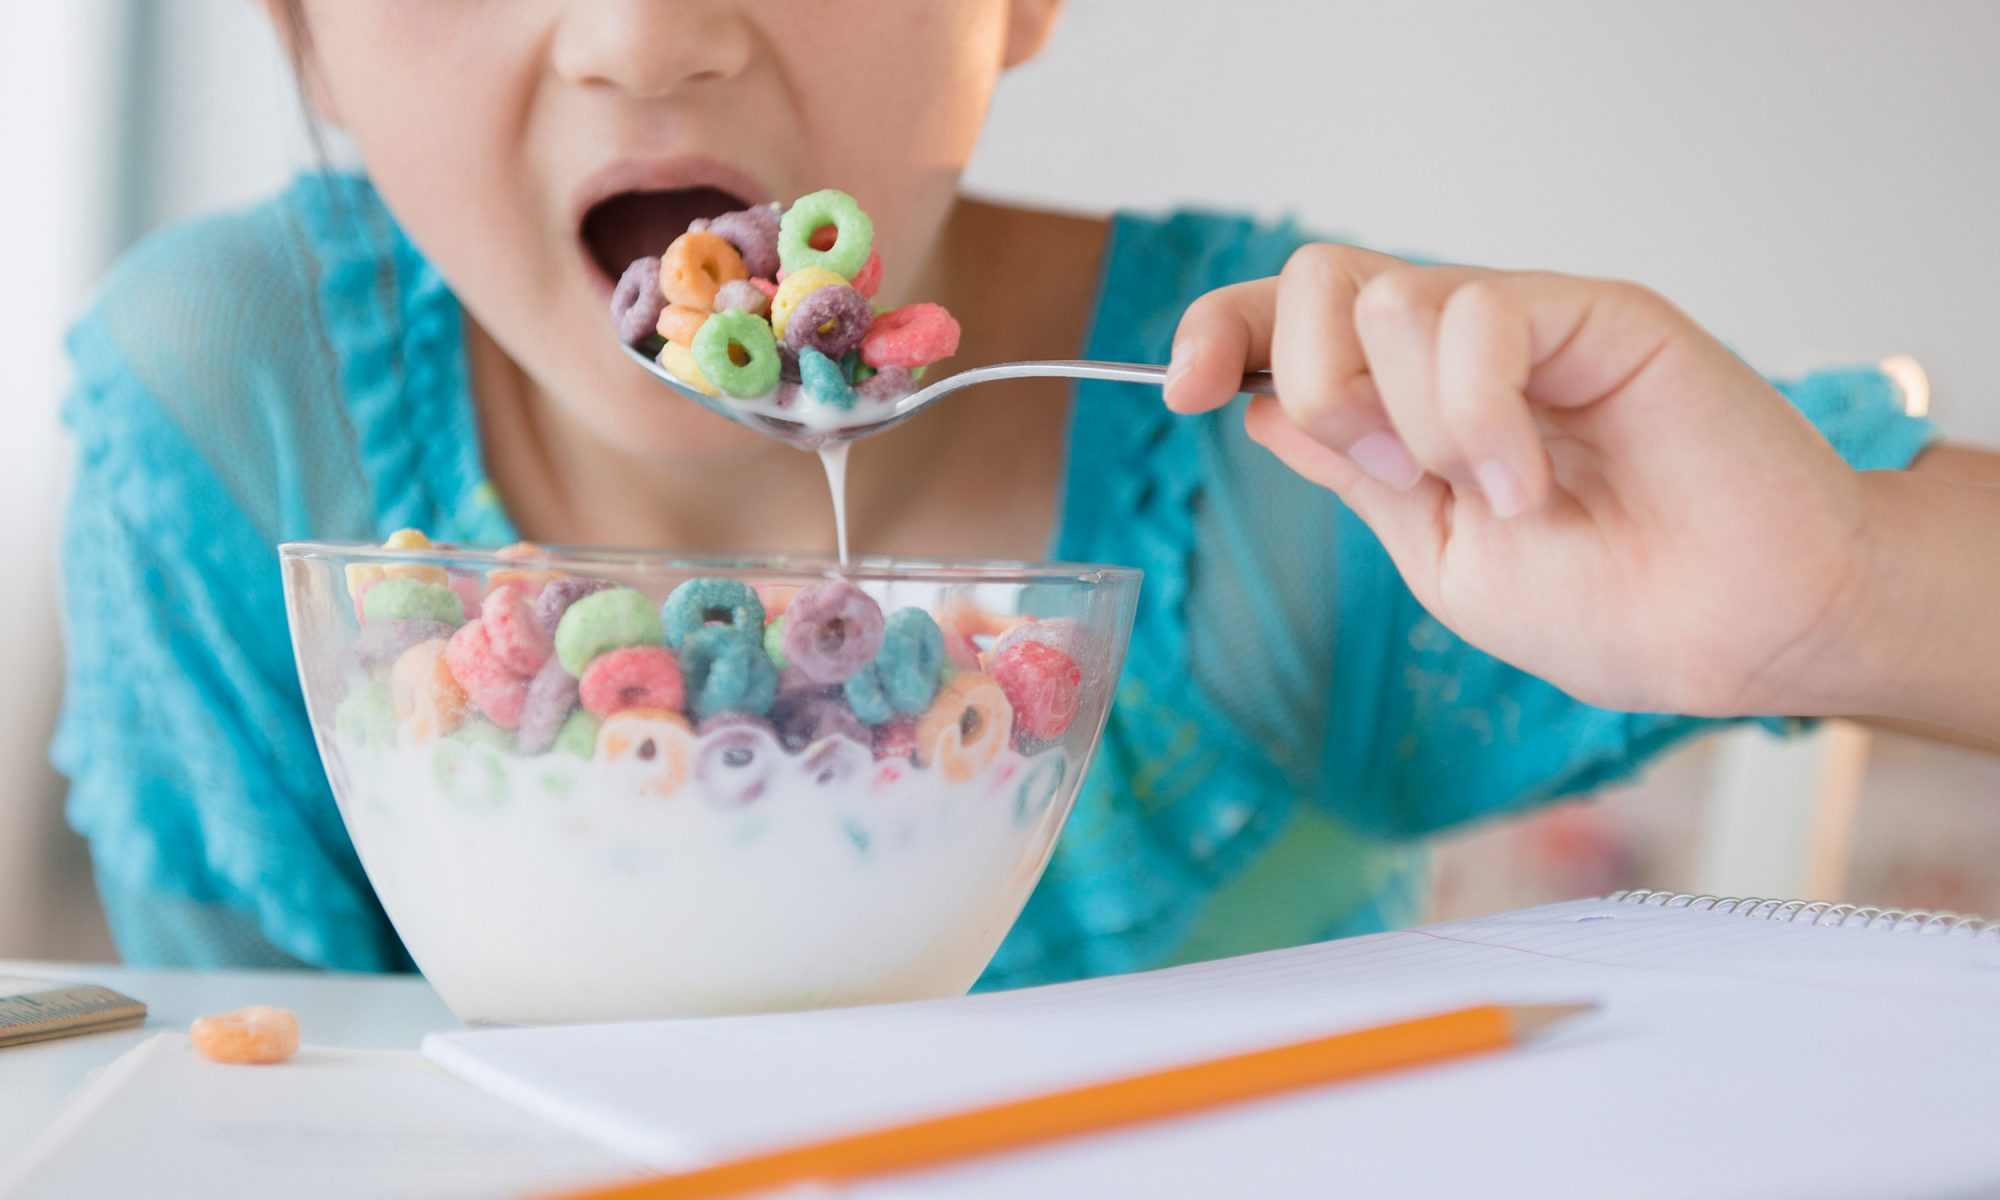 EC: Skipping Breakfast Is a Risk Factor for Childhood Obesity